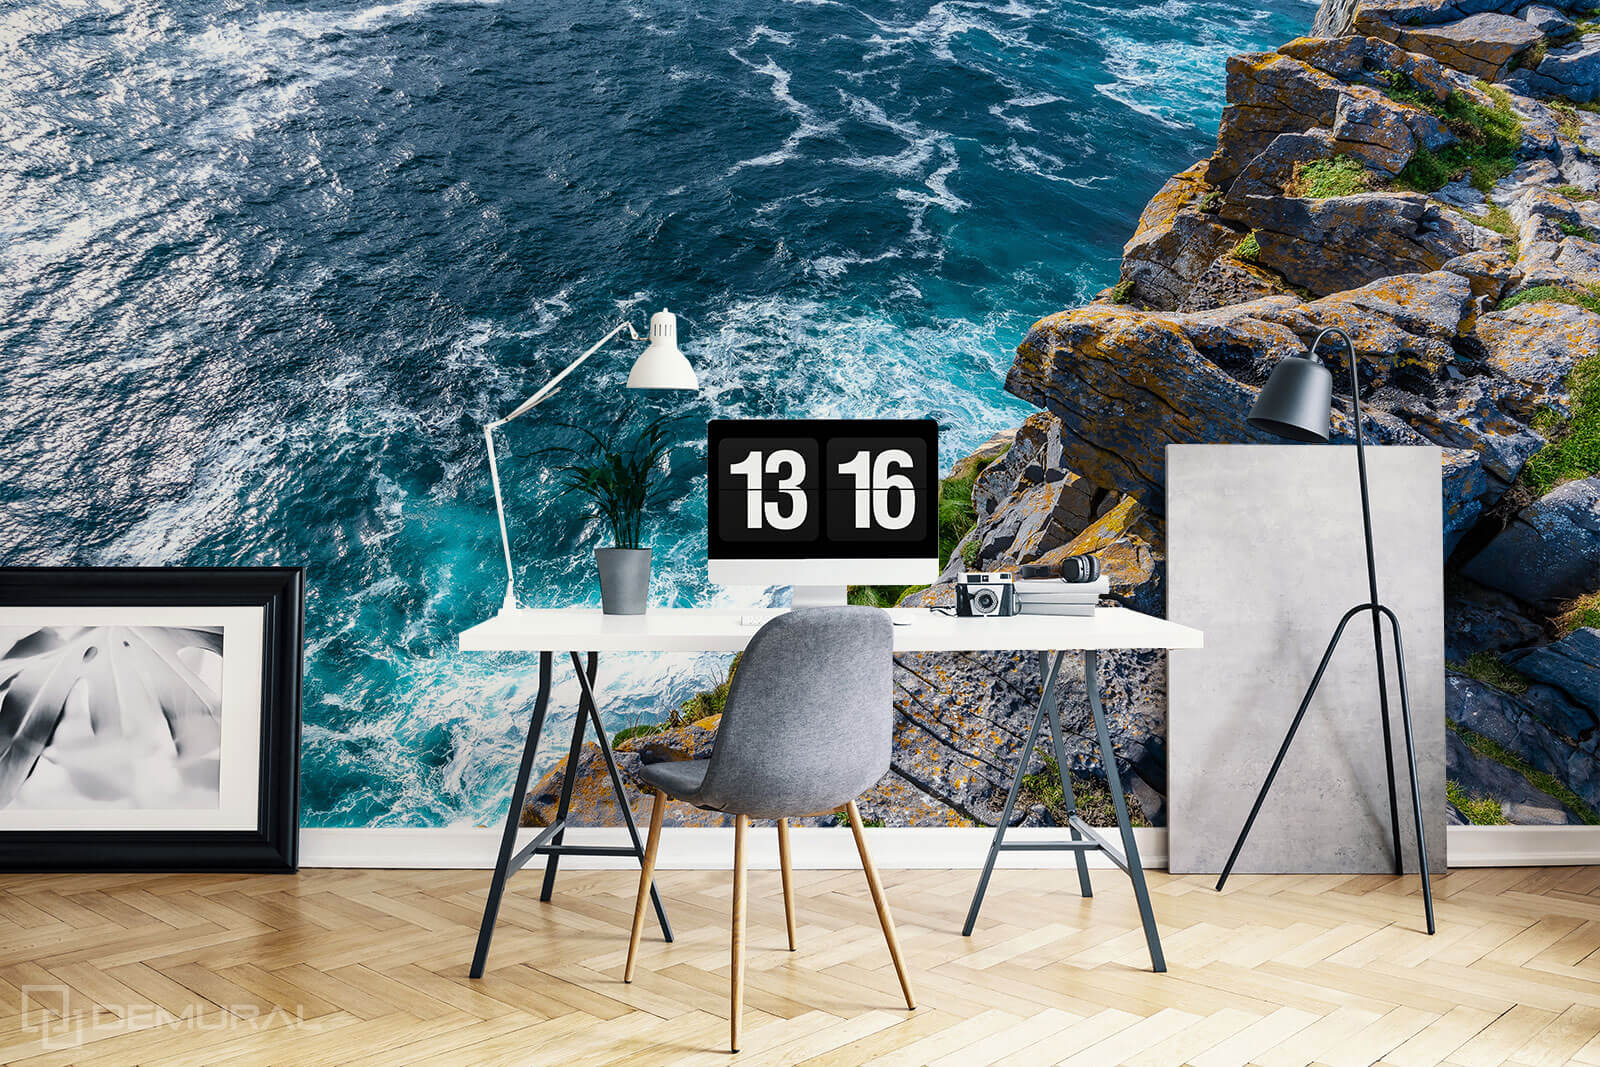 Photo wallpaper Sea Clifs - Sea photo wallpaper in office - Demural